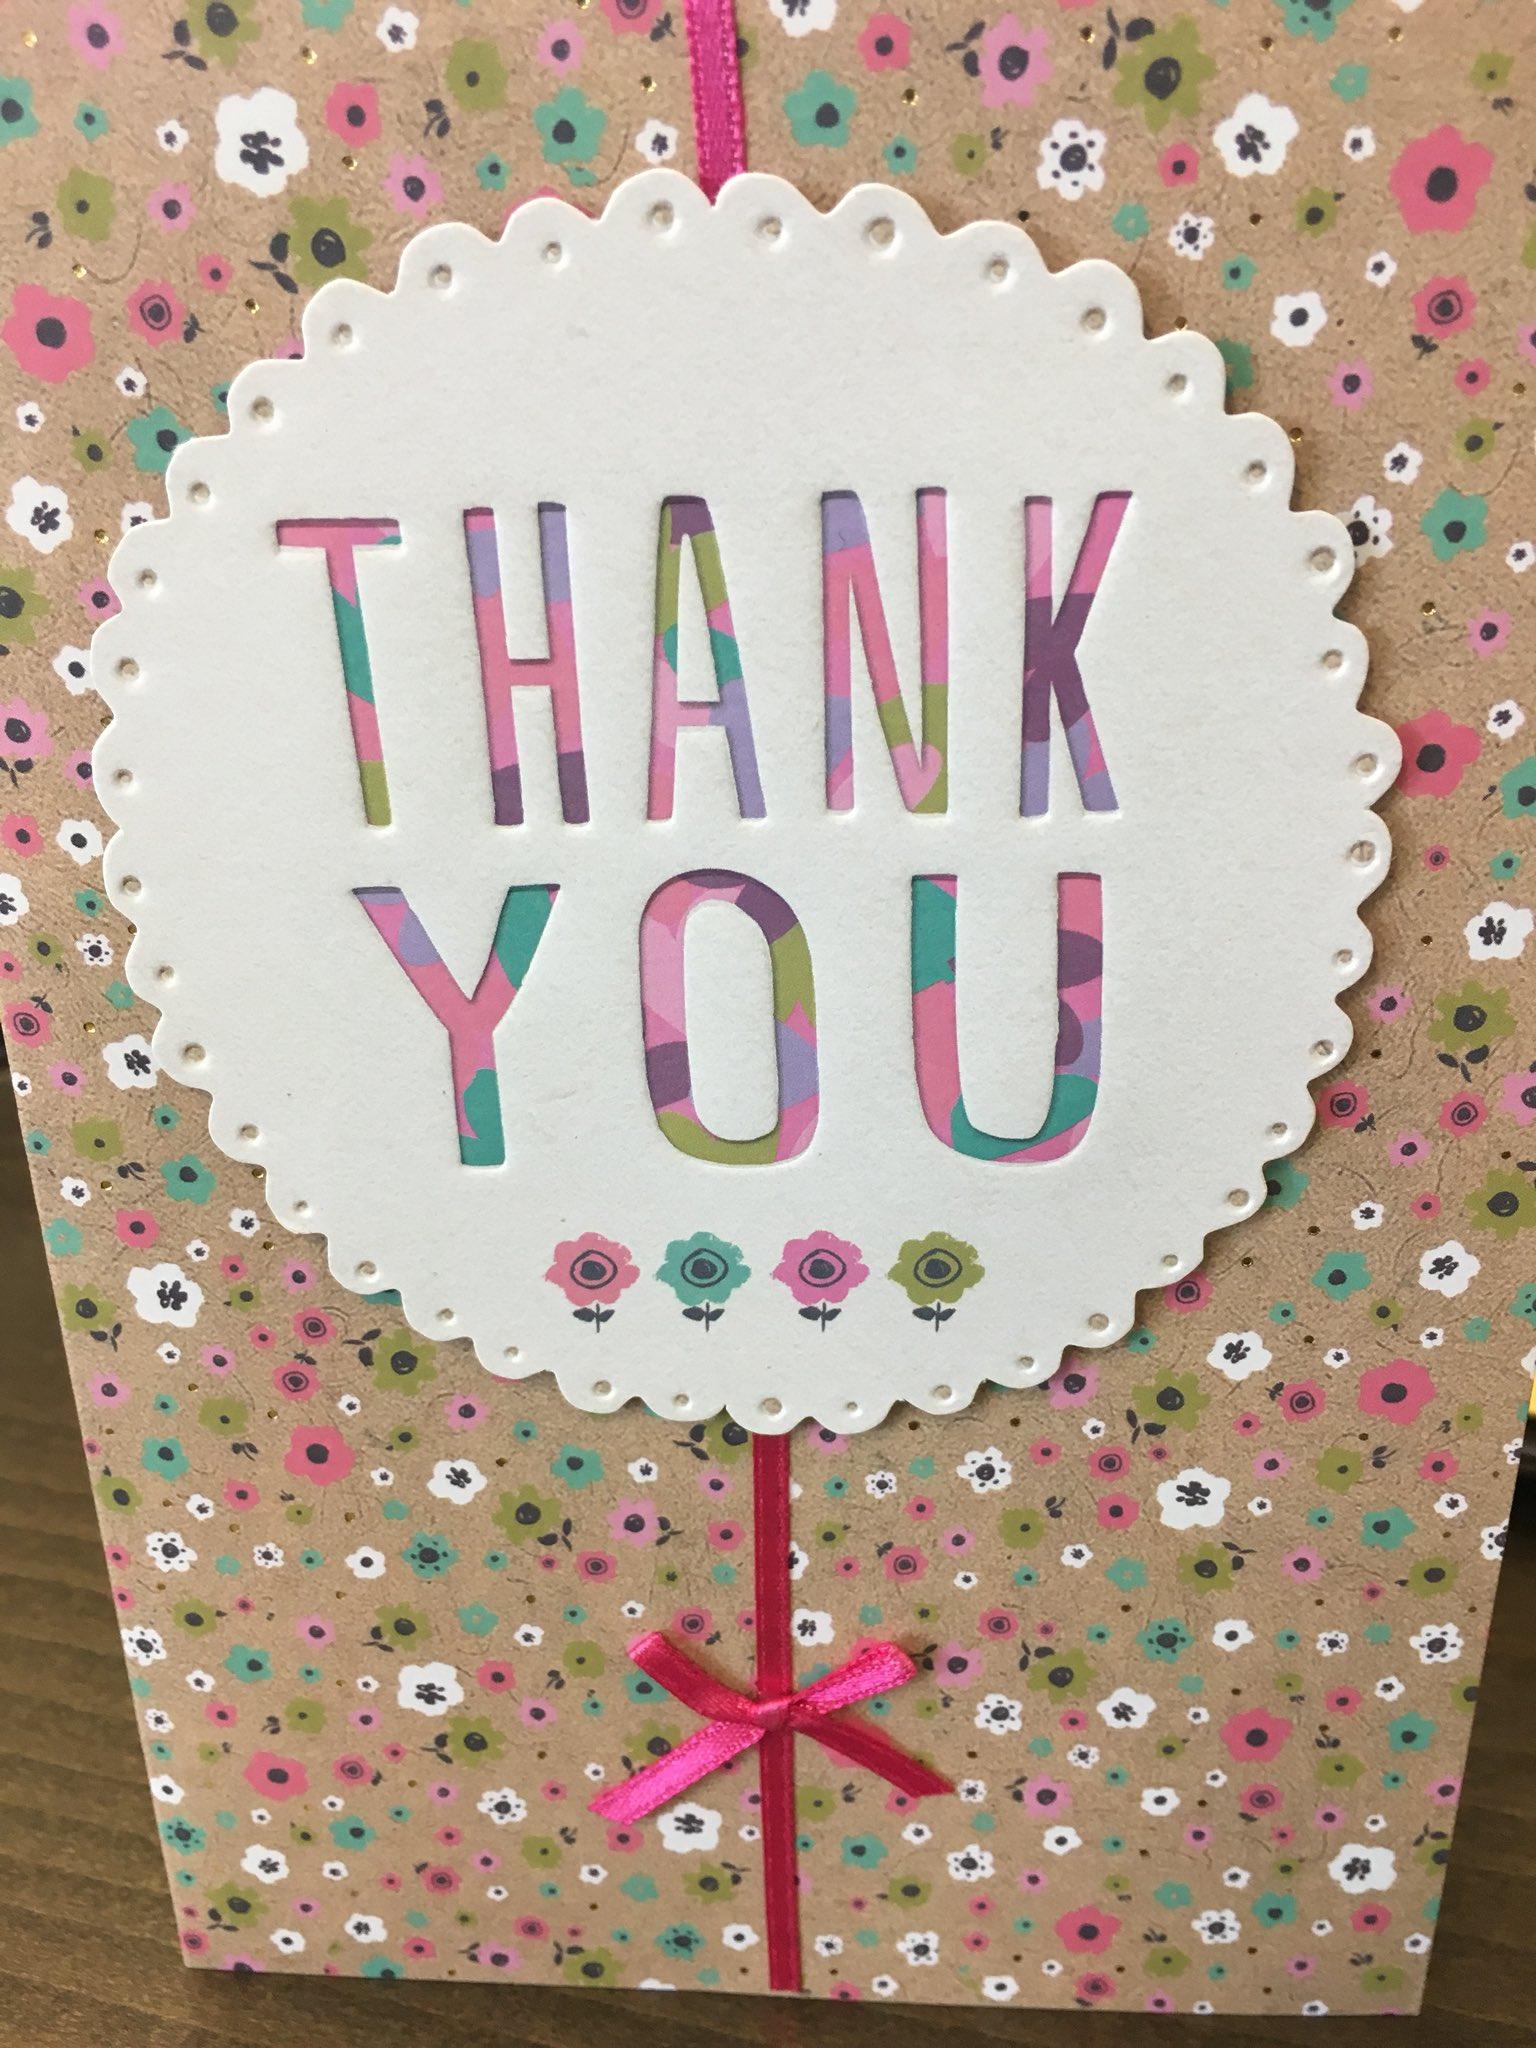 A big #ThankYou to #KhushiIssuar our #WorkExperience #student from @rusheymeadnews for my card this morning! #brightened up my morning! #worldofwork @Highcross @CareerEnt https://t.co/RtPh34d4EB